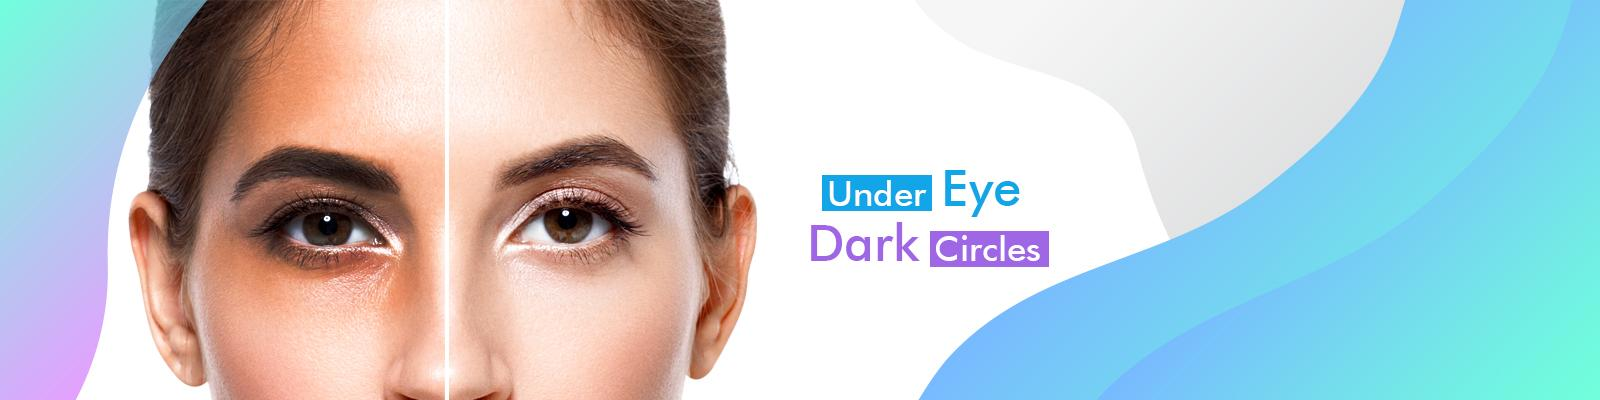 Balck Circle Under Eyes Treatment